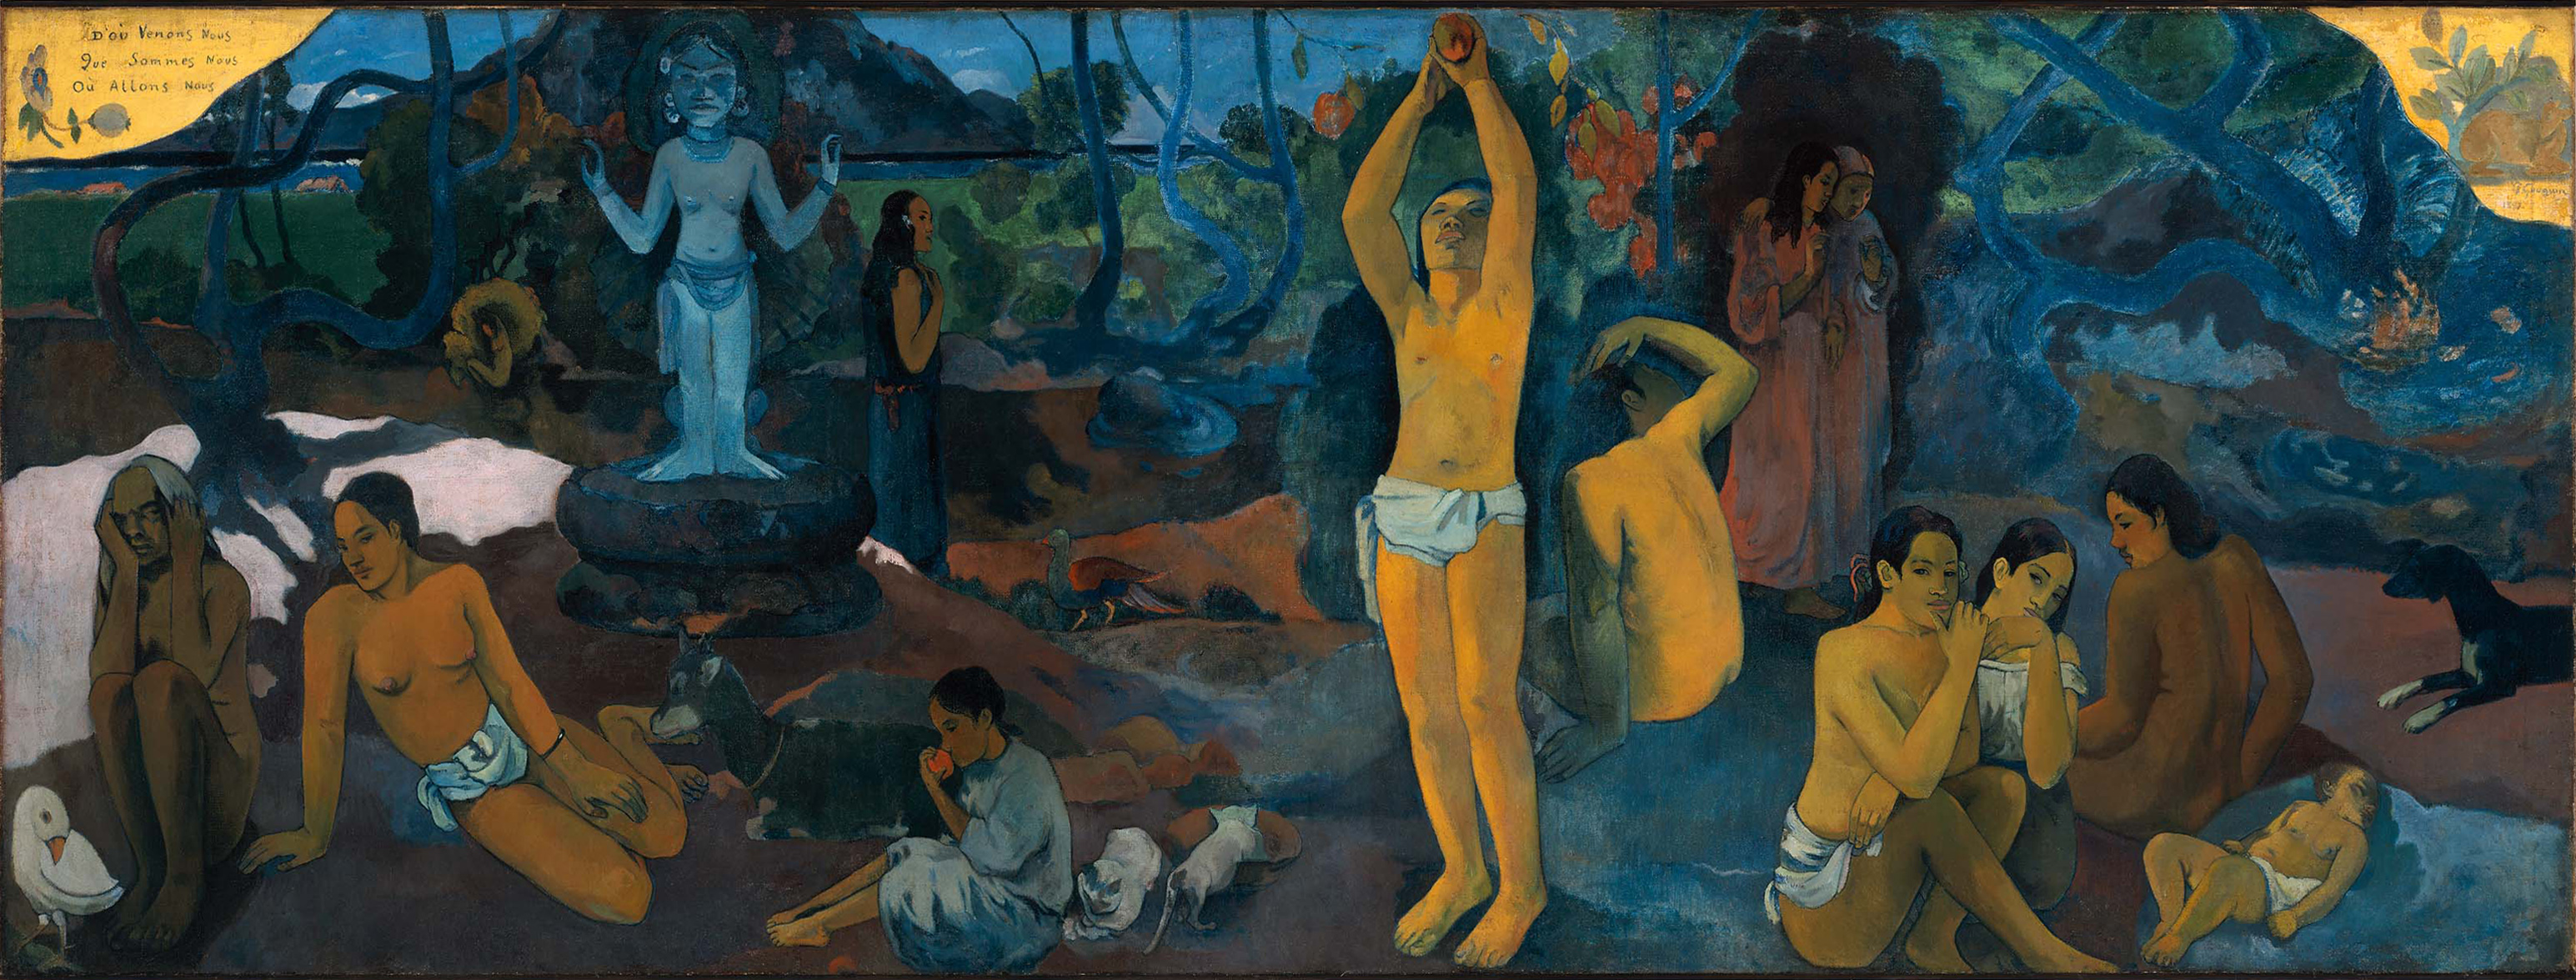 https://upload.wikimedia.org/wikipedia/commons/e/e5/Paul_Gauguin_-_D%27ou_venons-nous.jpg